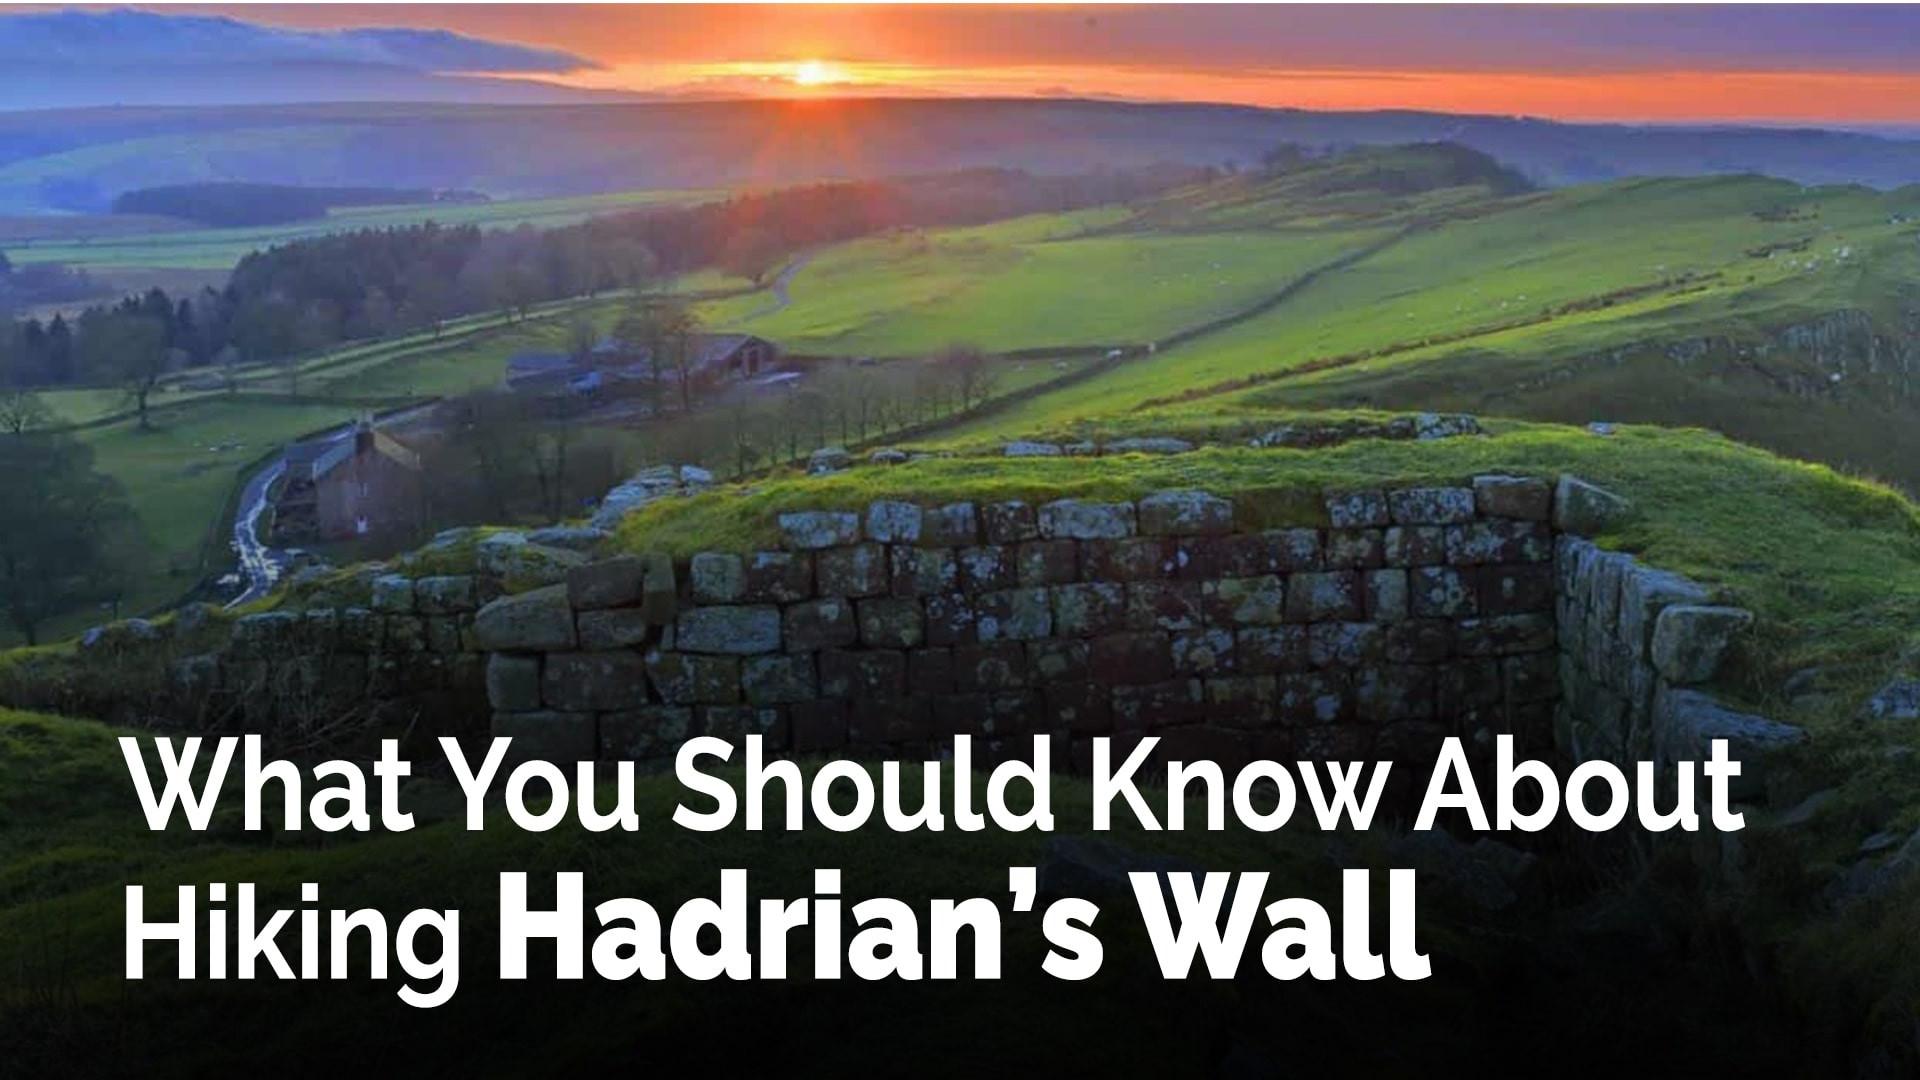 What You Should Know About Hiking Hadrians Wall